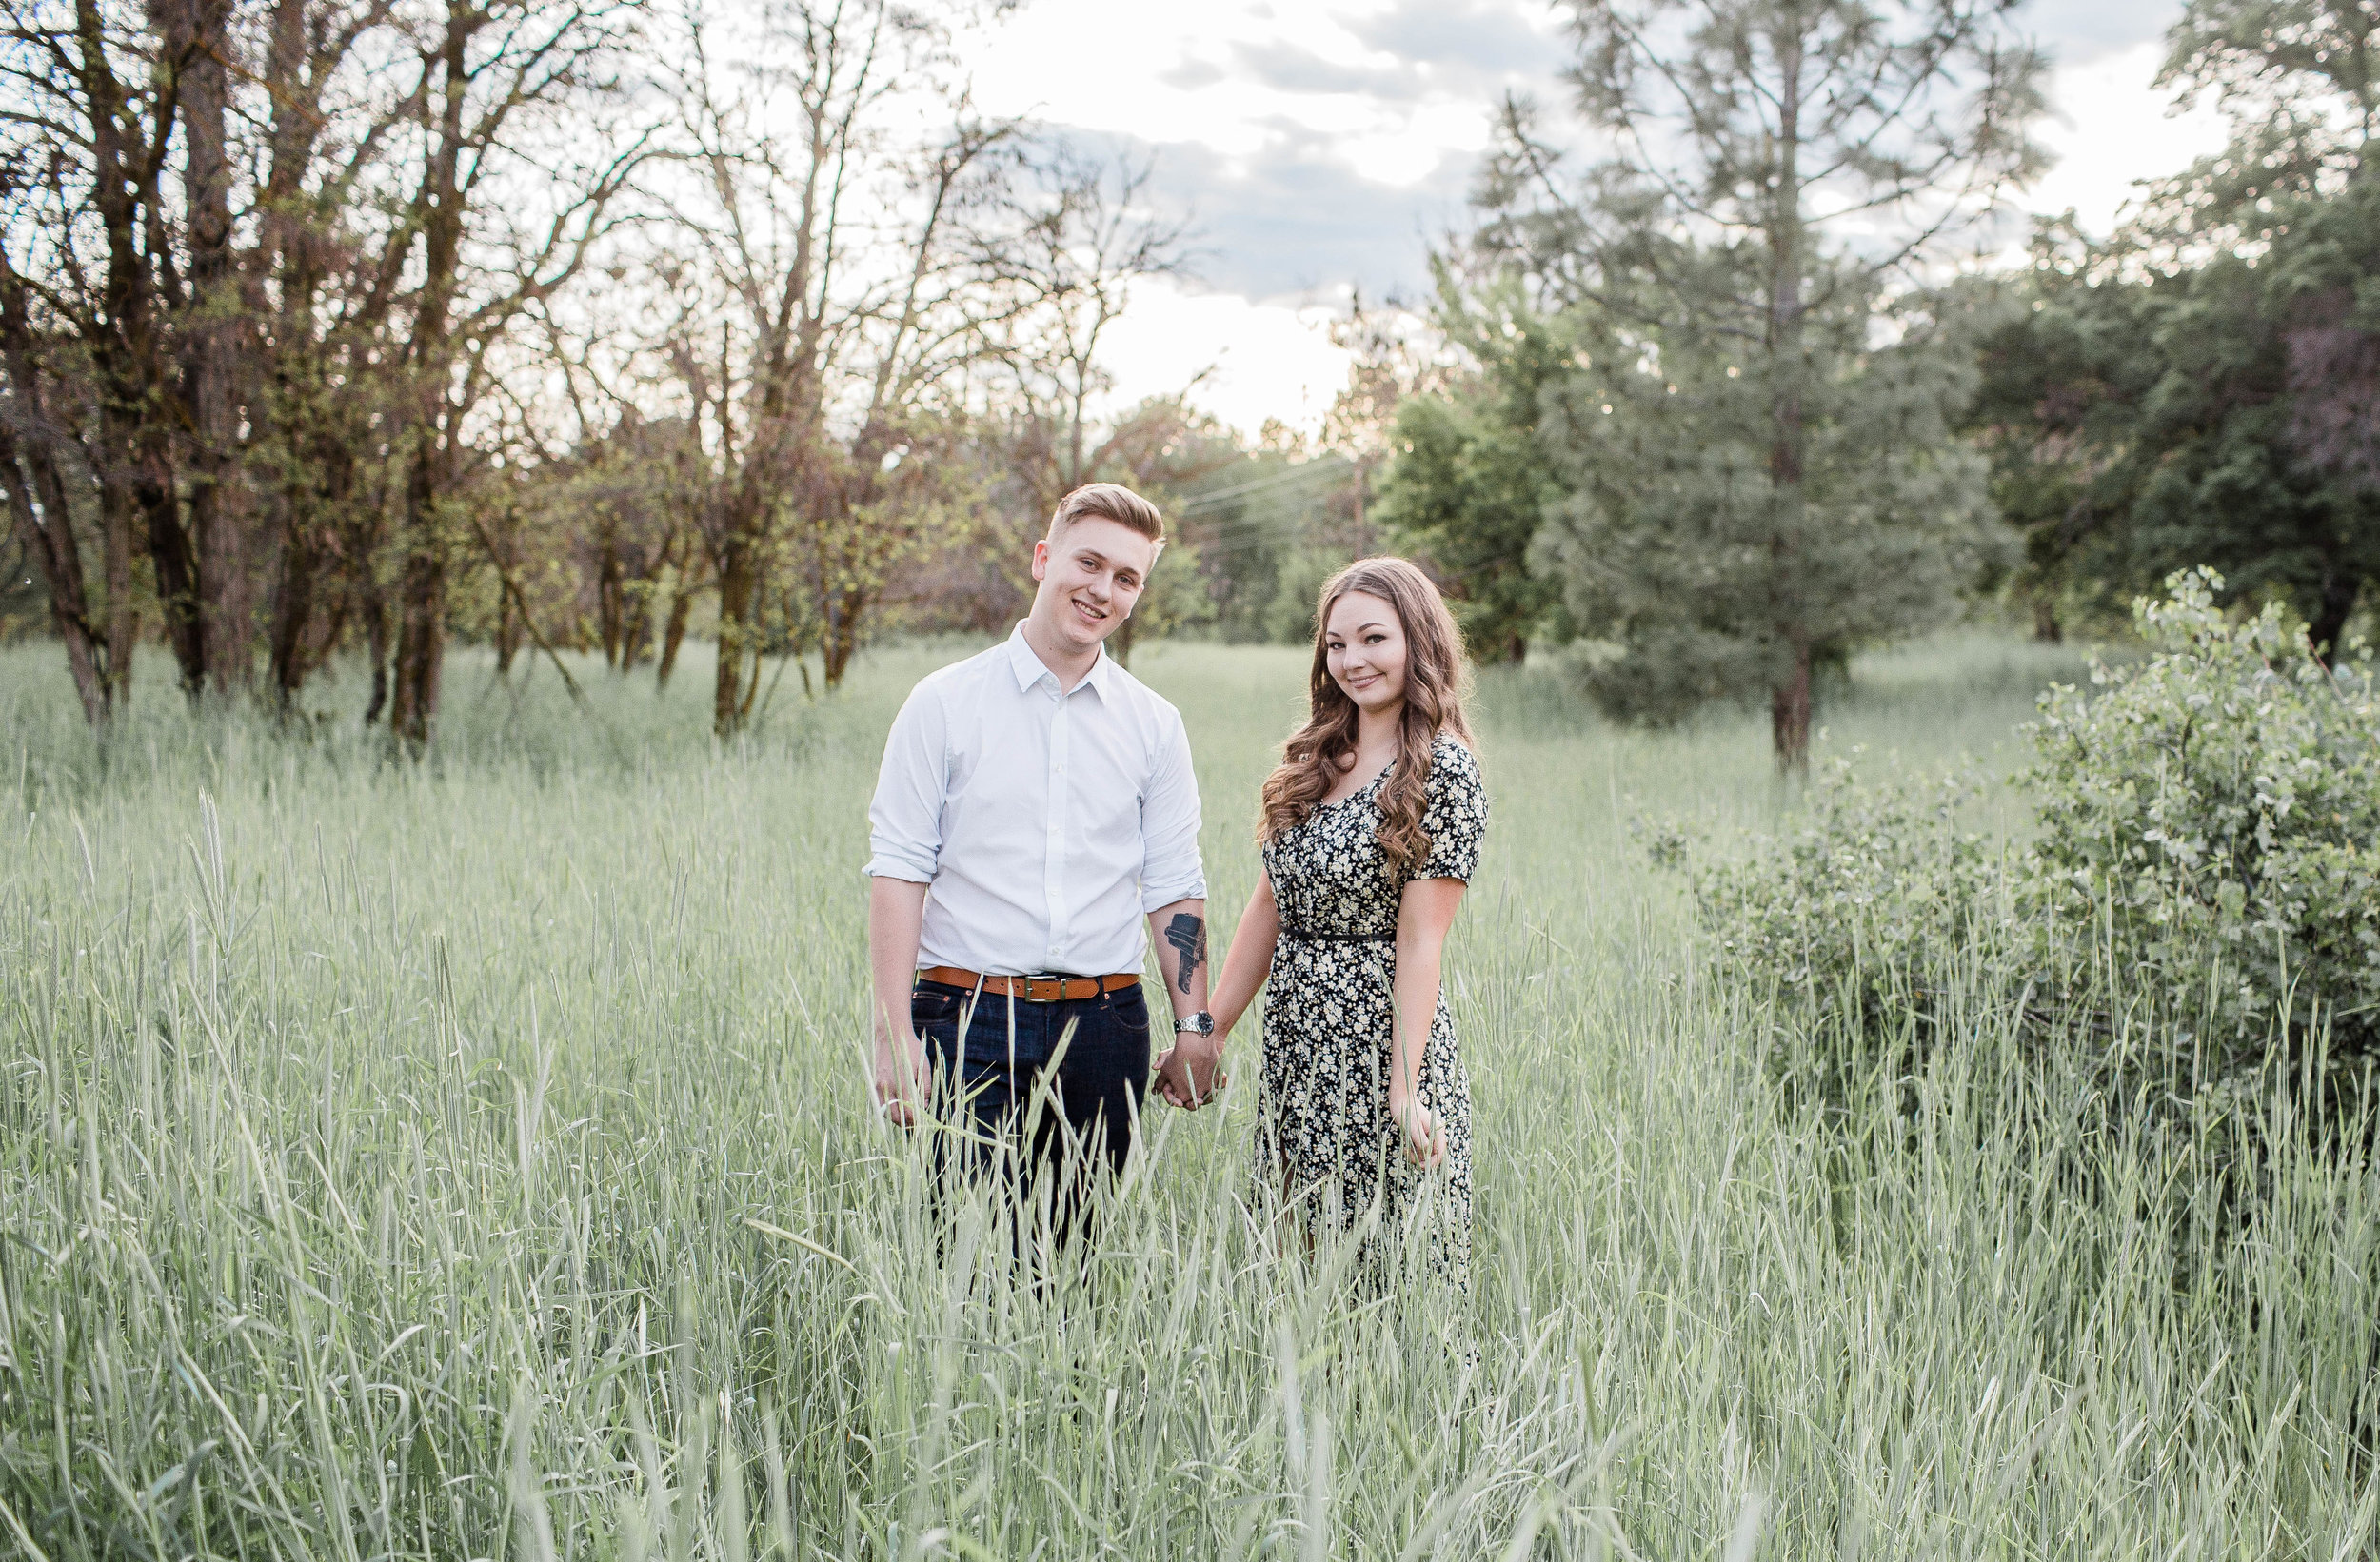 Kole-Danielle-Boise-Foothills-Summer-Engagement-Session-39.jpg